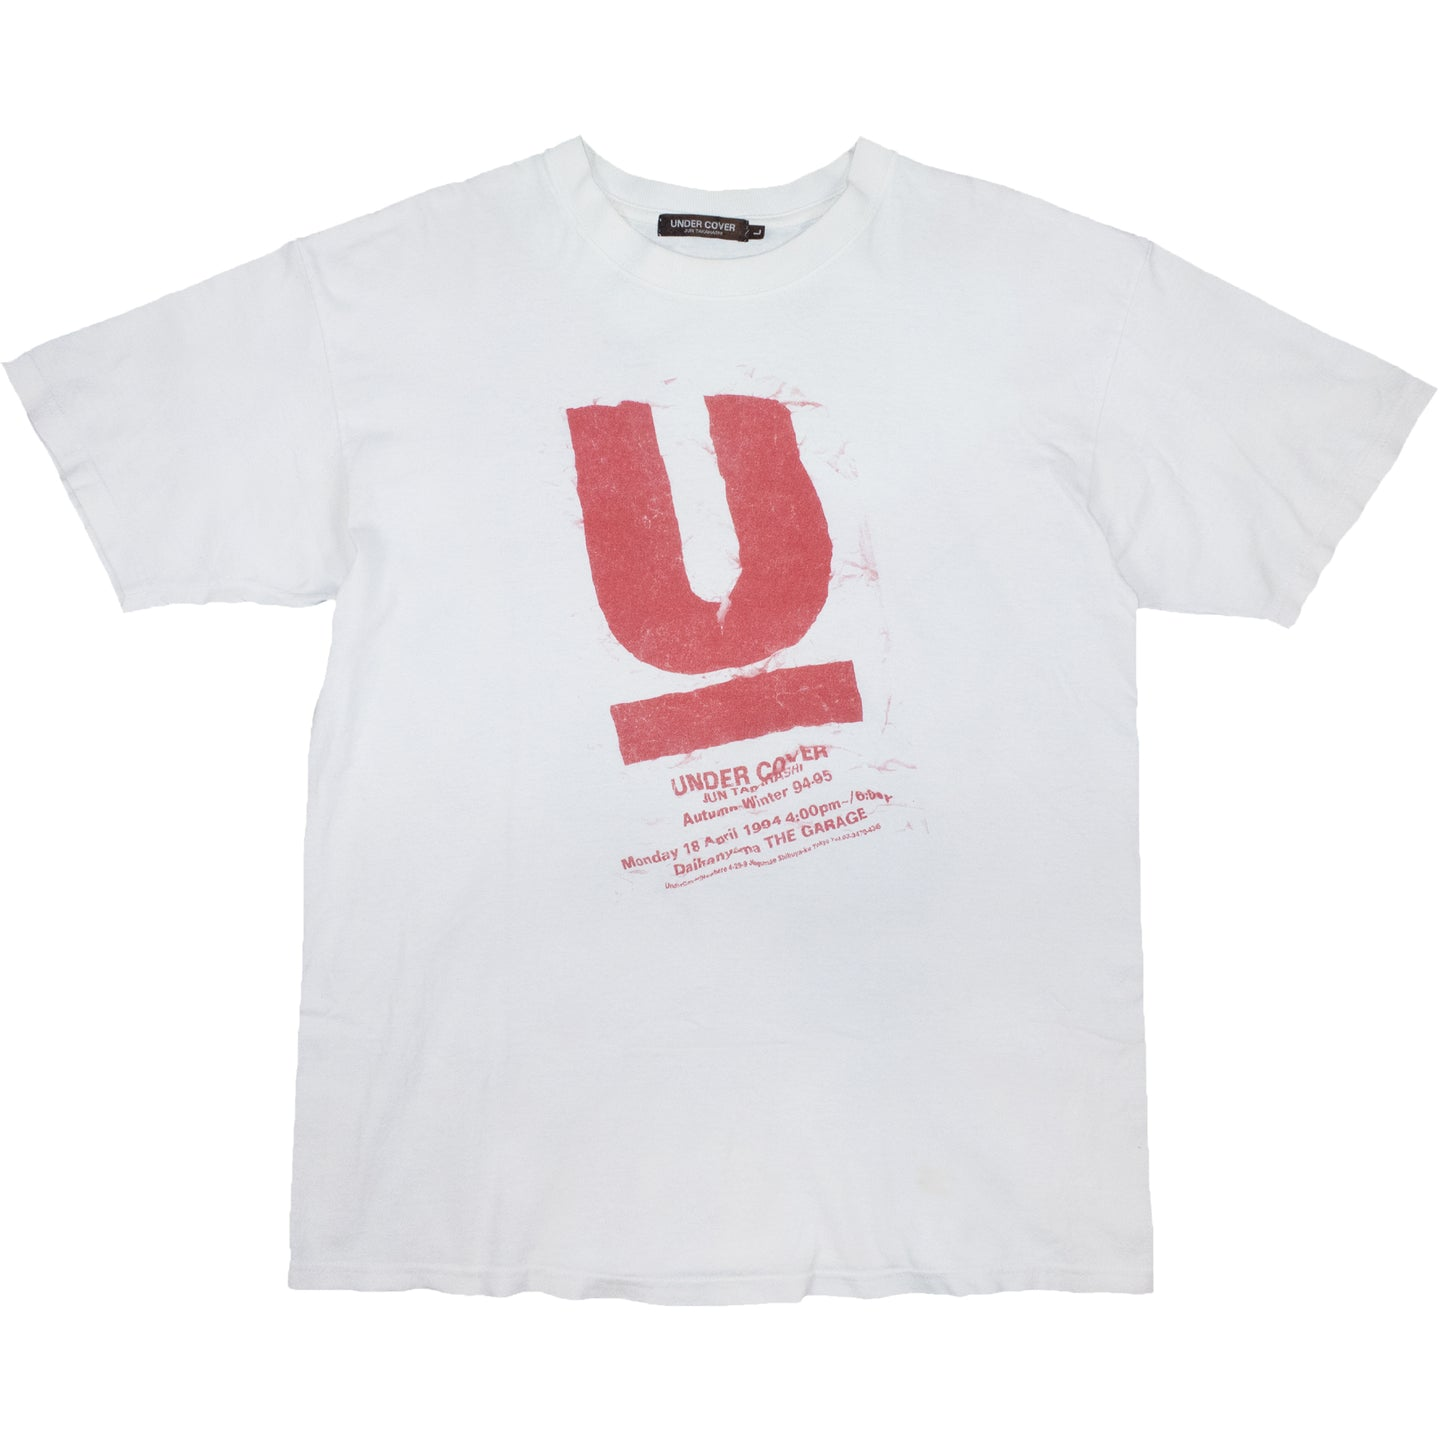 Undercover AW94 'First show tee' <Br> Size Large